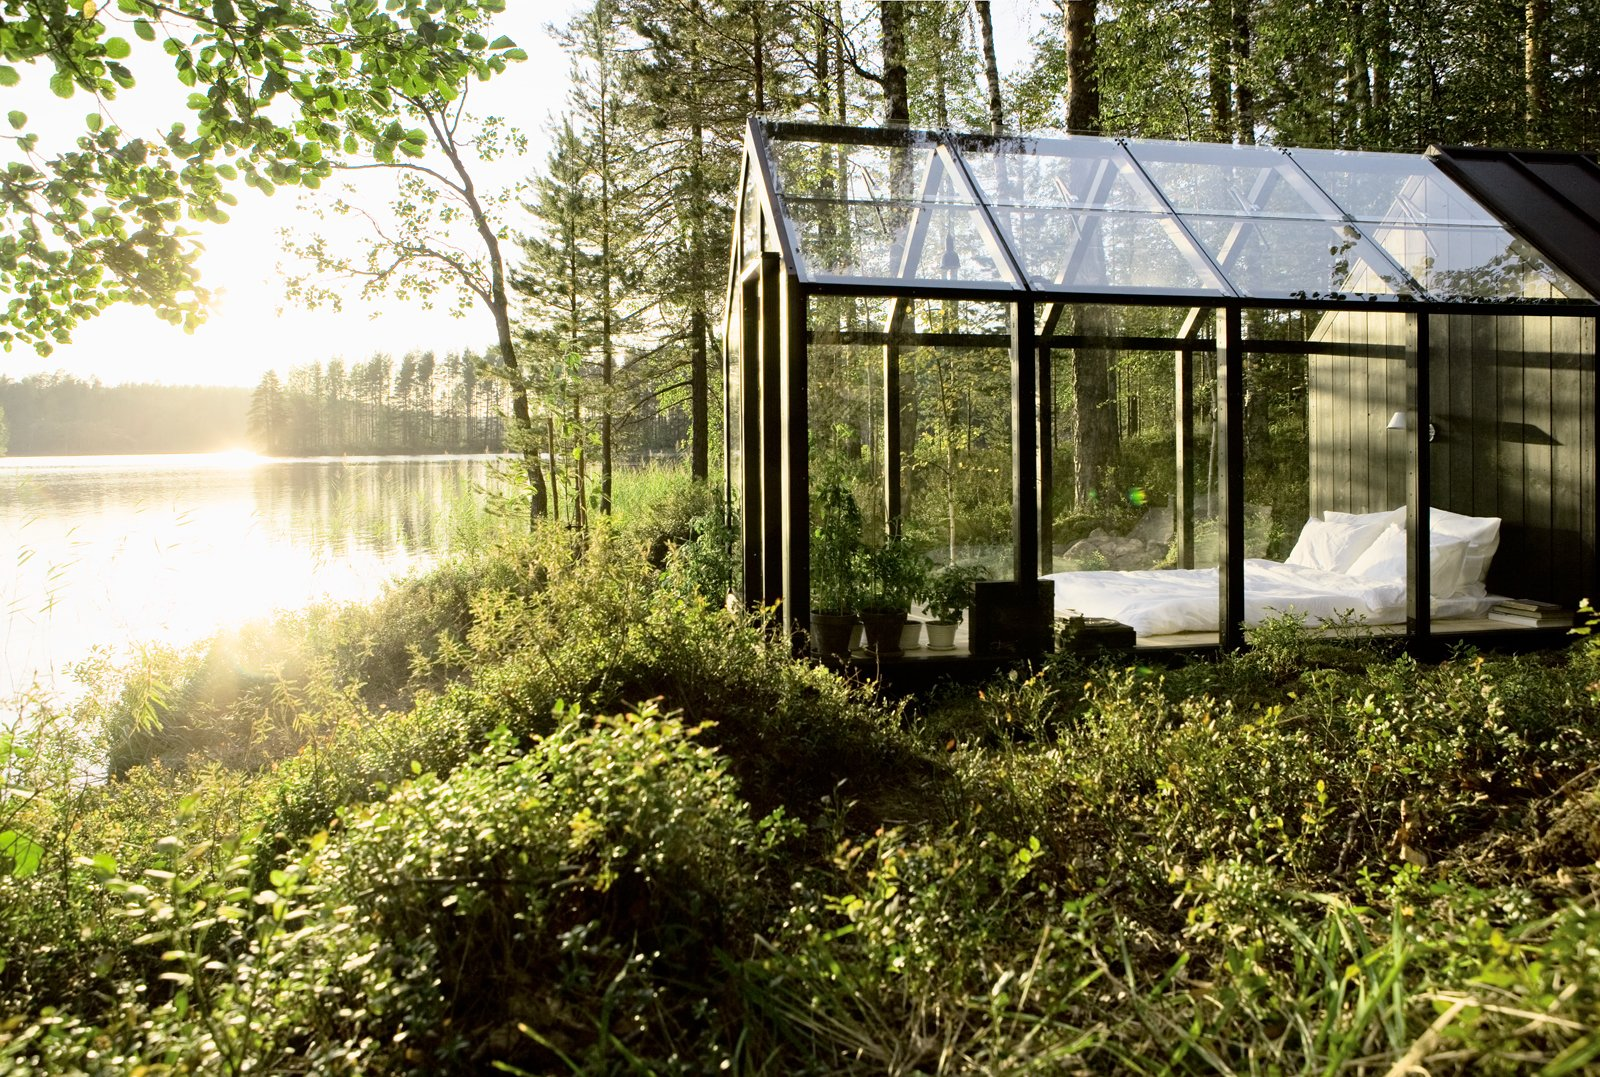 #prefab #Finland #glass #shed #bed #light #green #escape #outdoor  Off the grid from Cabin